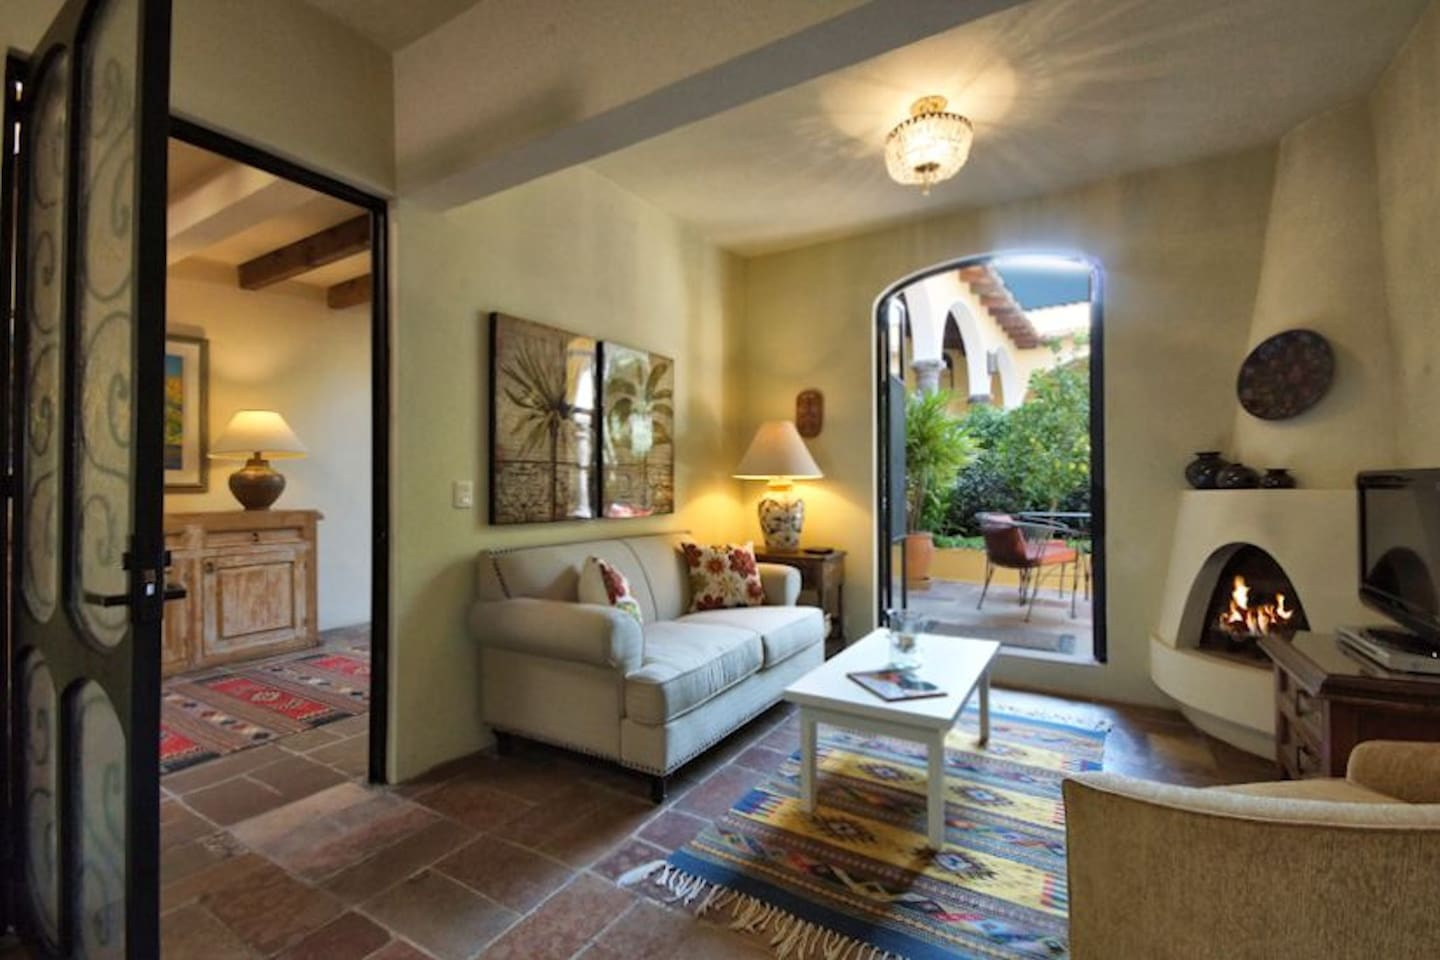 This view from the kitchen shows the outside foyer as well as the living room of this cozy casita.